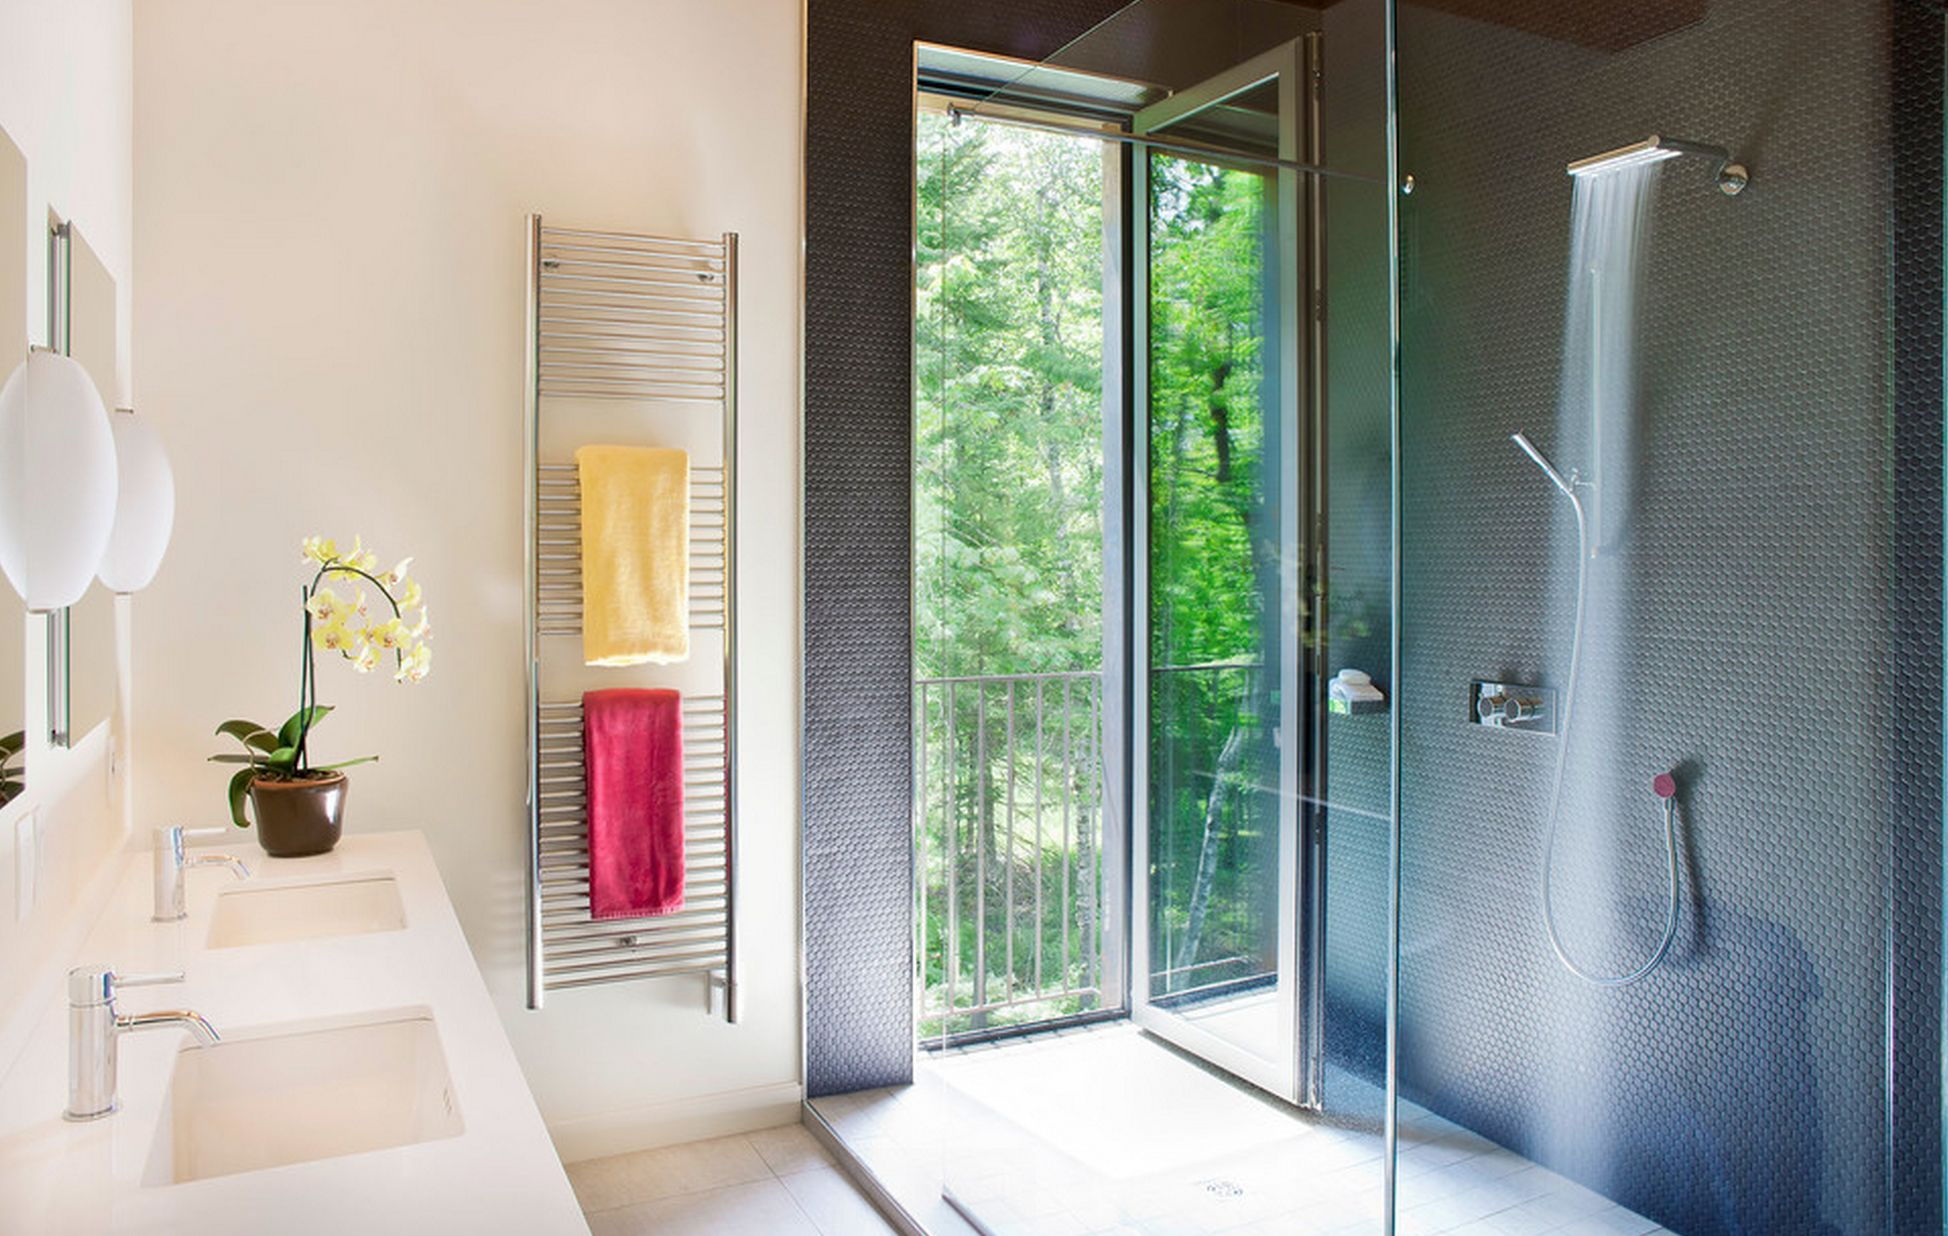 Decorative Towel Warmers : Why and how to choose the right towel warmer